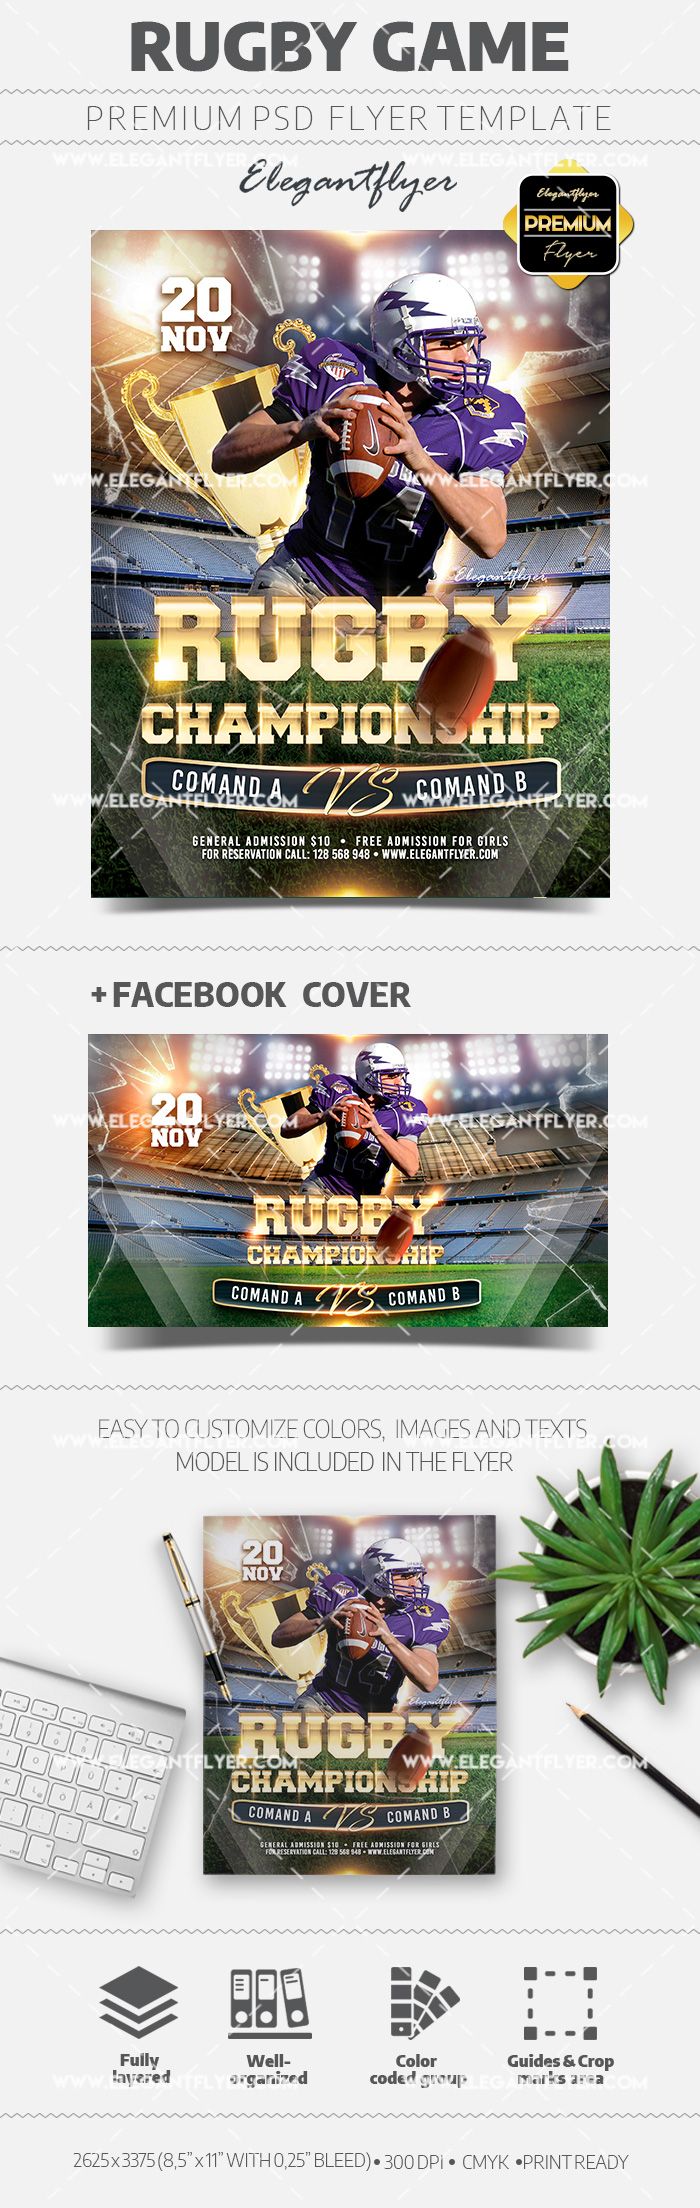 Rugby Game Flyer PSD Flyer Template